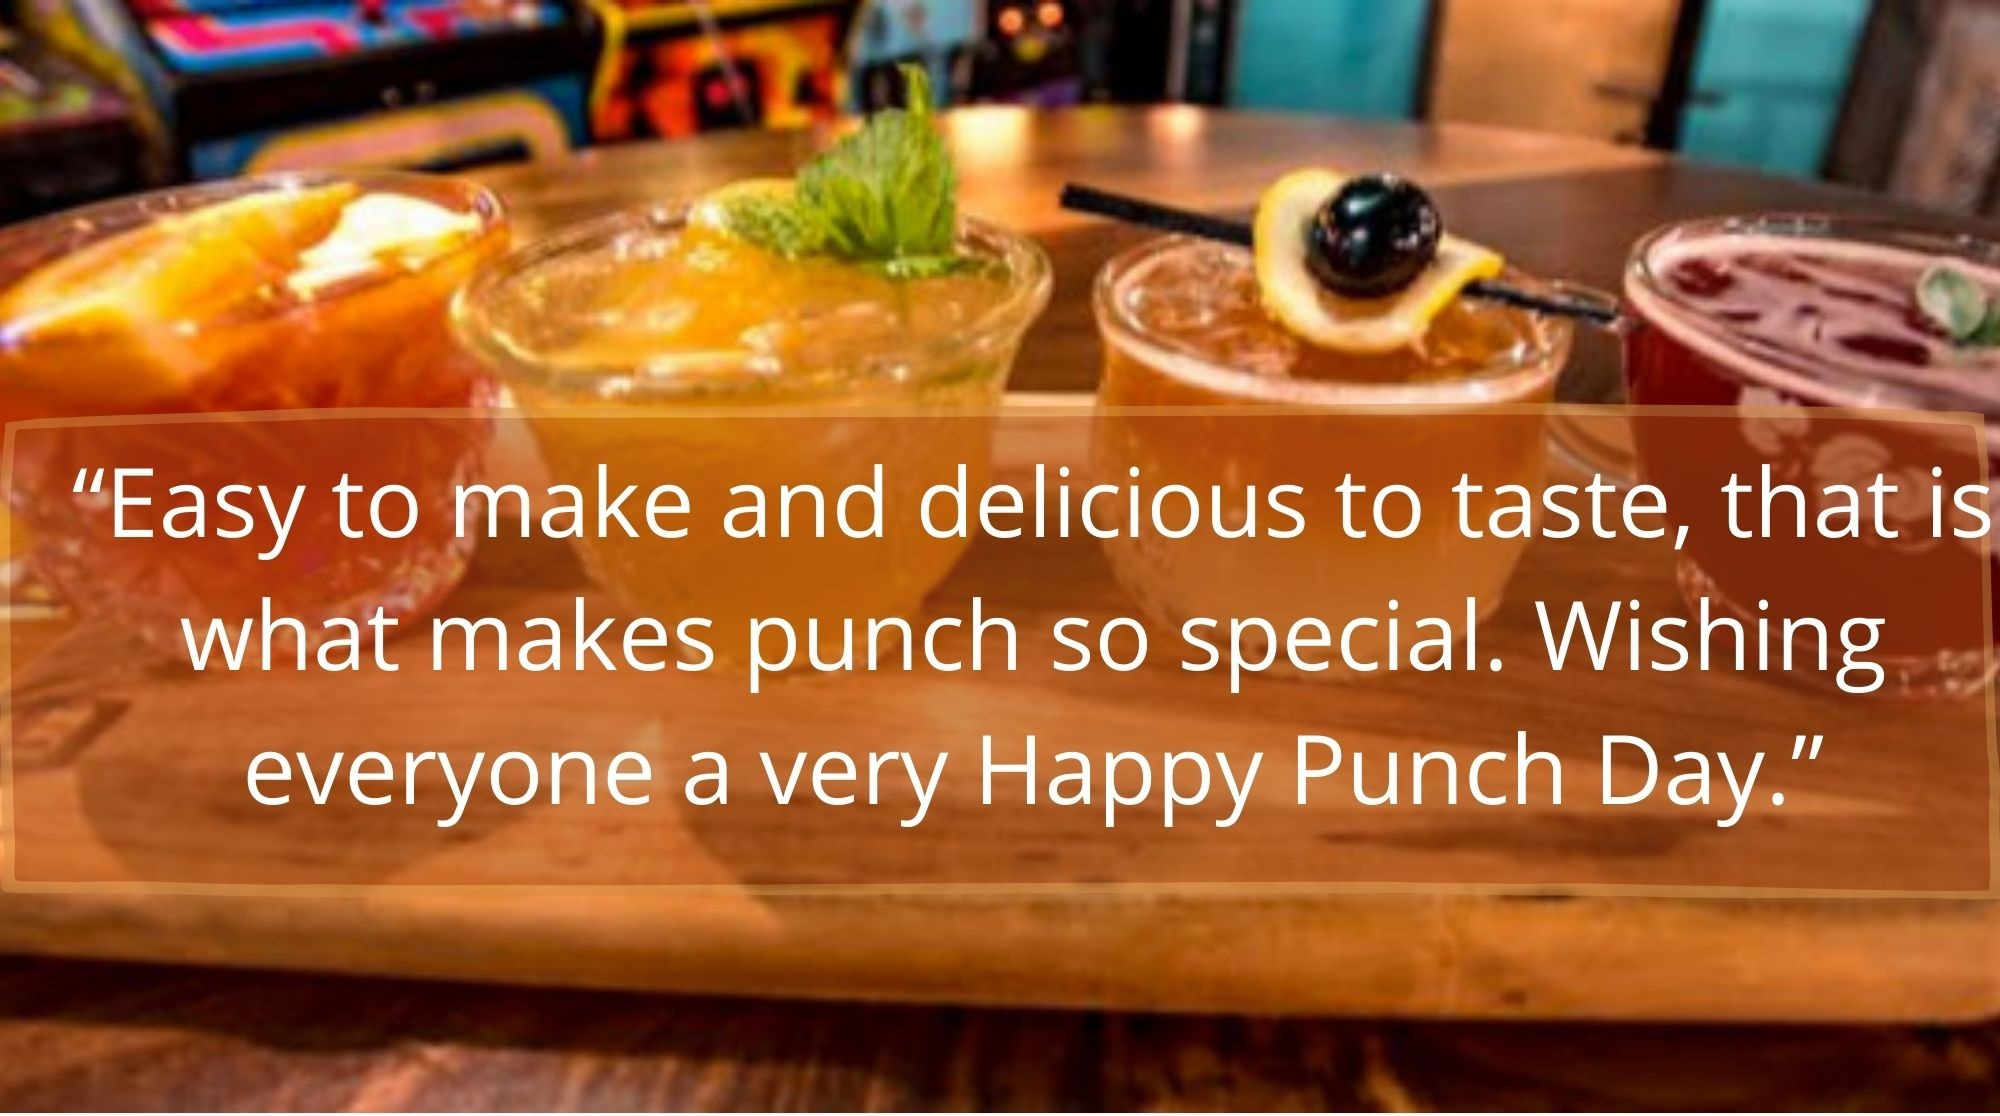 National Punch Day